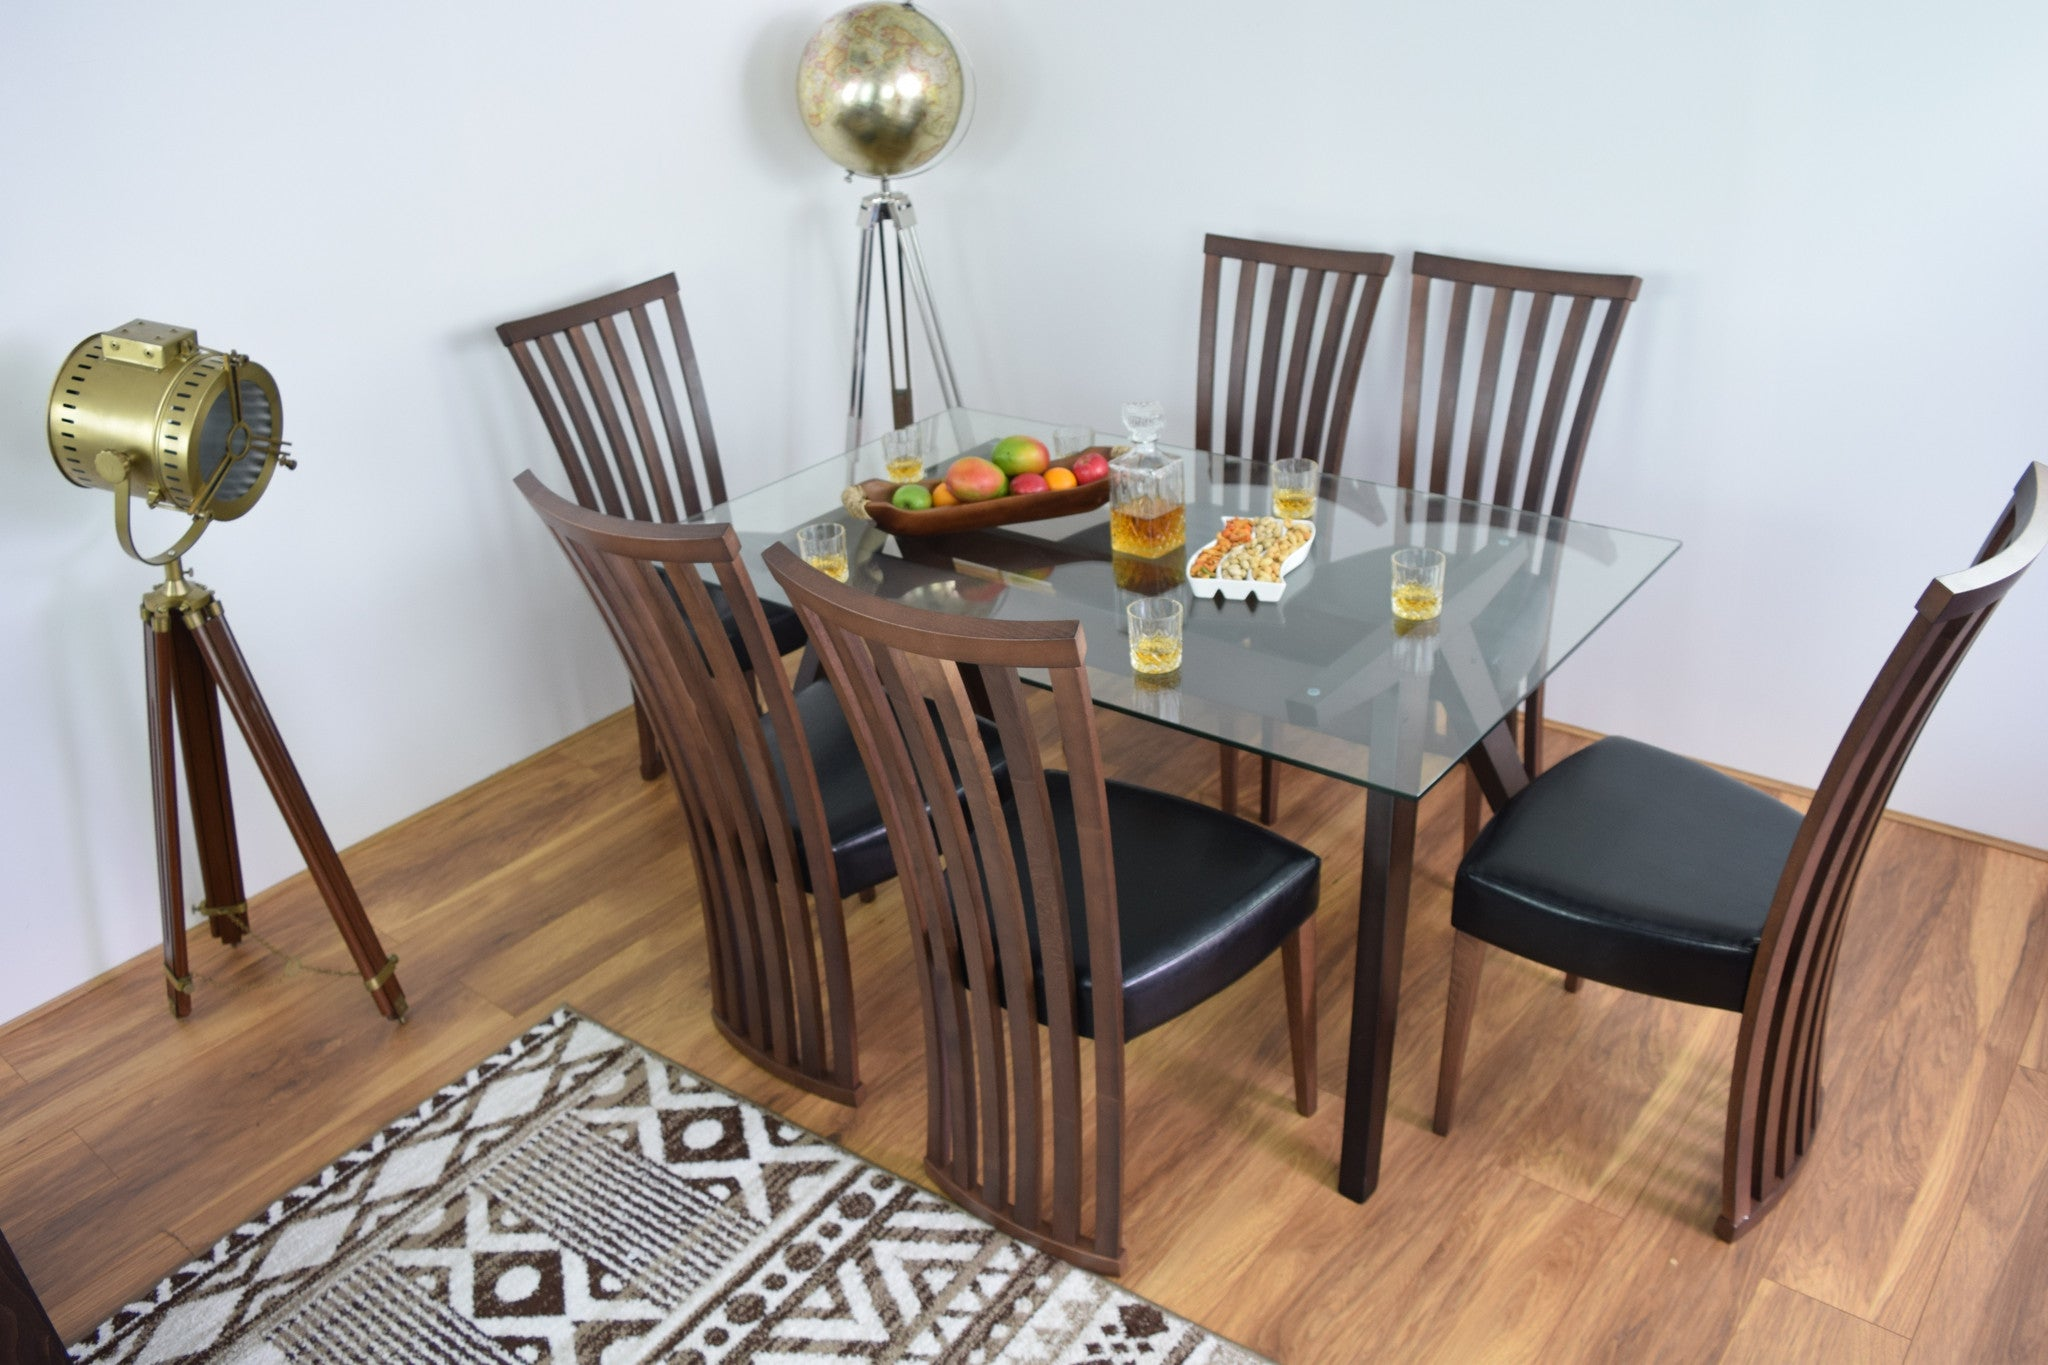 Best Dining Room Furniture Dubai Light of Dining Room